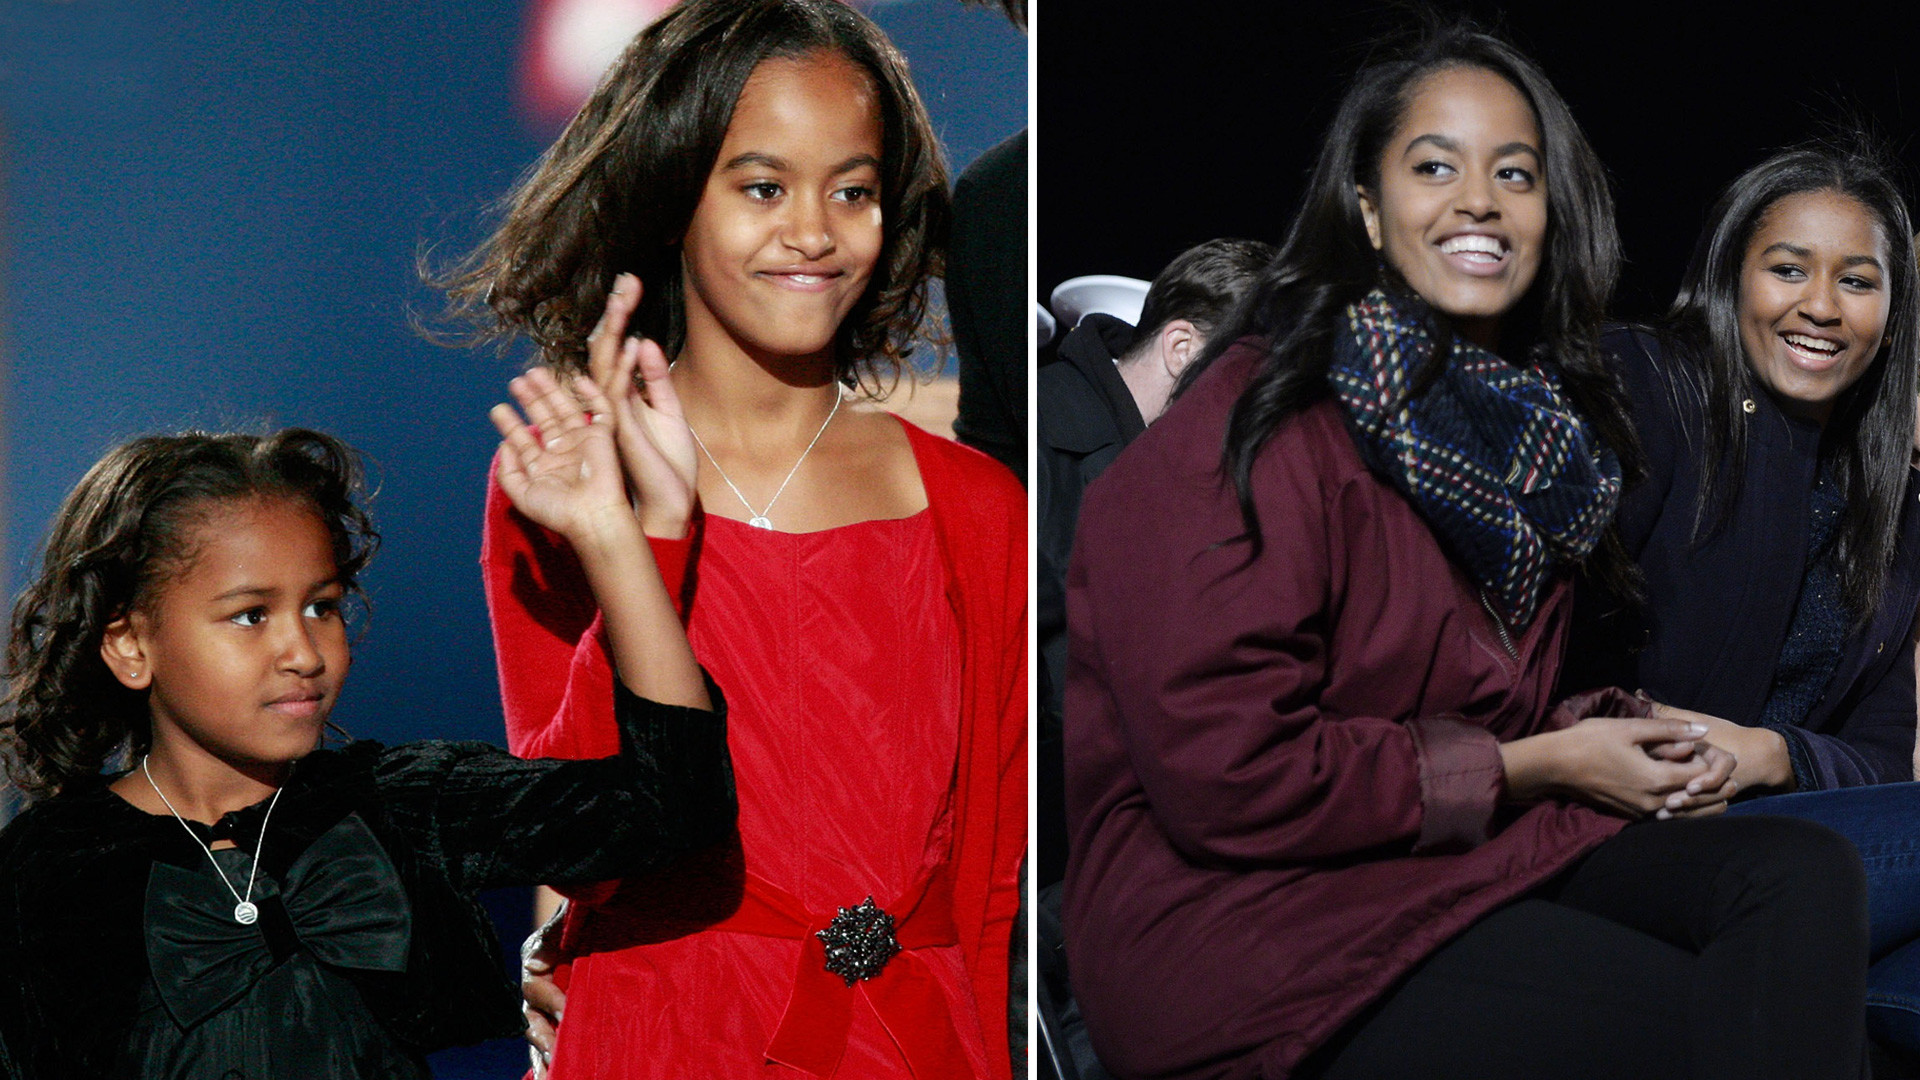 1920x1080 26 photos of Sasha and Malia Obama growing up before our eyes